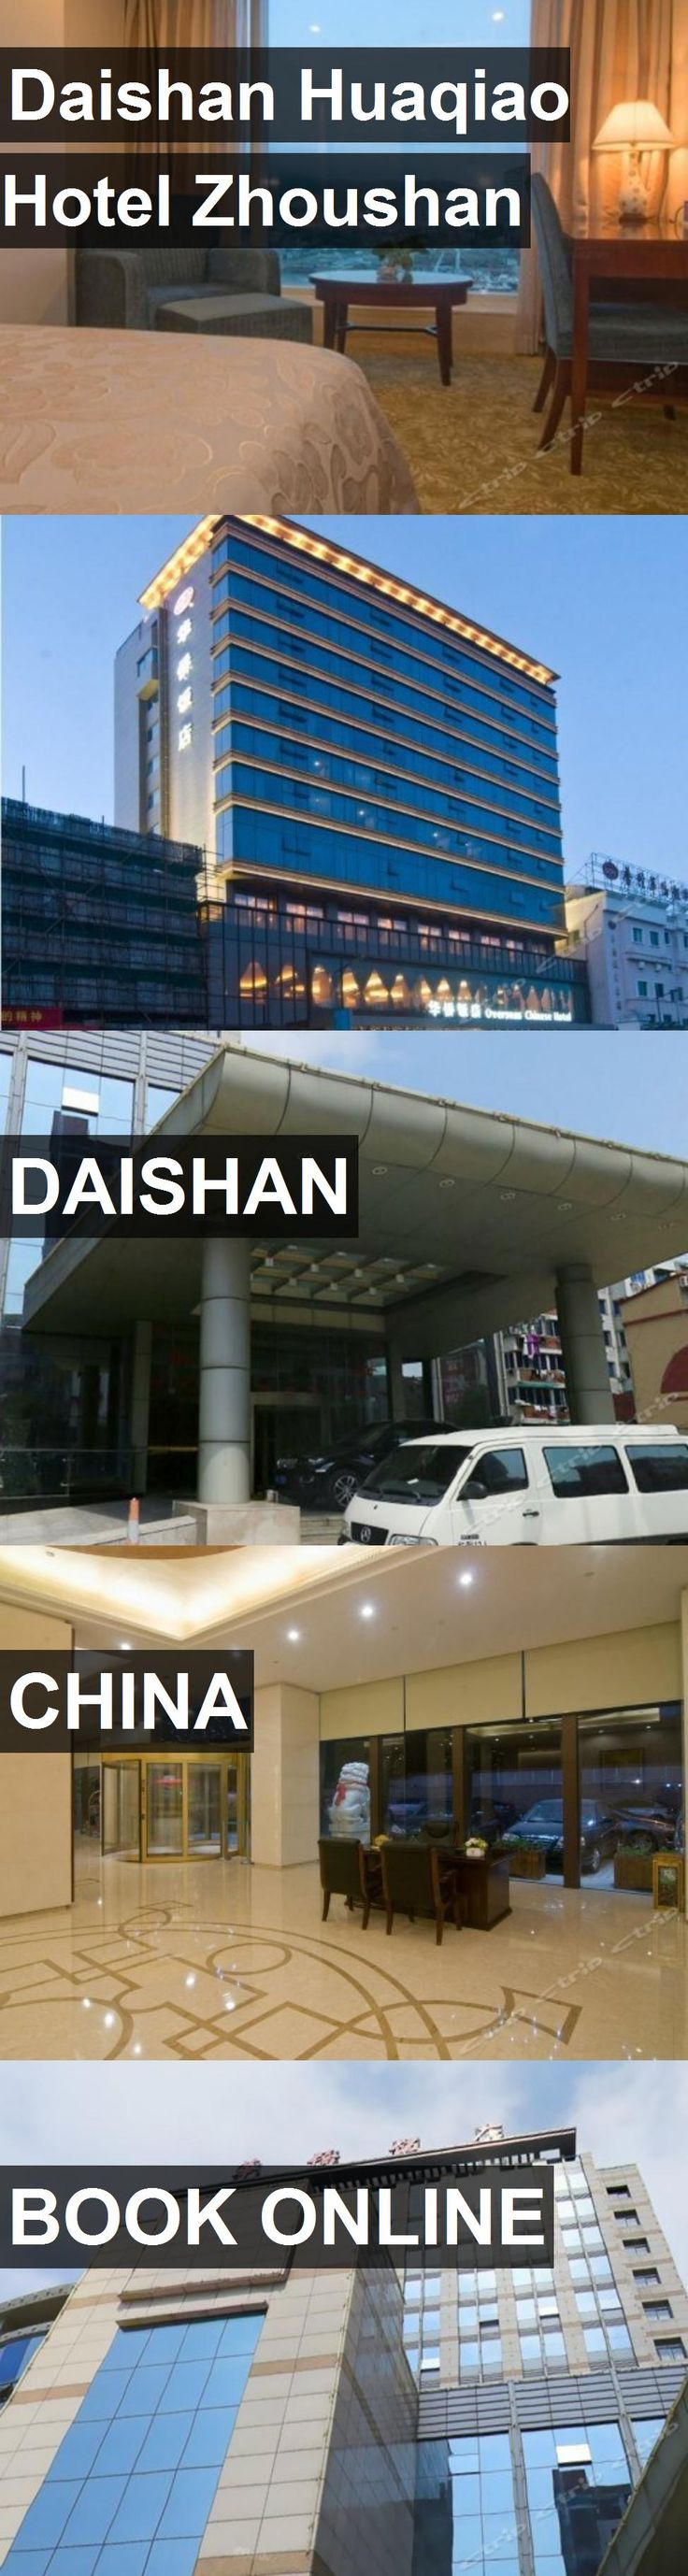 Daishan Huaqiao Hotel Zhoushan in Daishan, China. For more information, photos, reviews and best prices please follow the link. #China #Daishan #travel #vacation #hotel